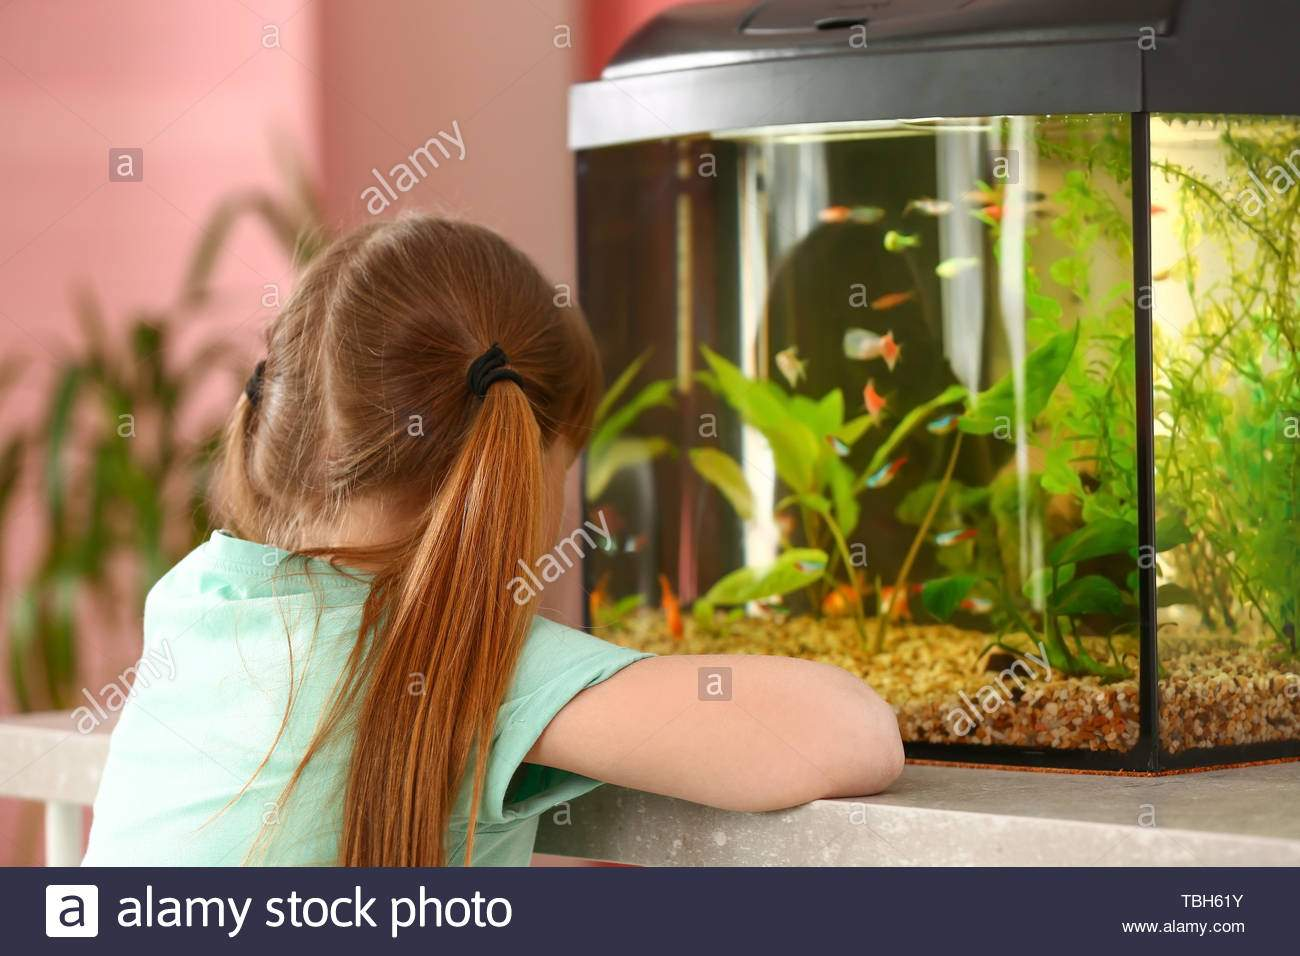 cute little girl looking at fish in aquarium TBH61Y